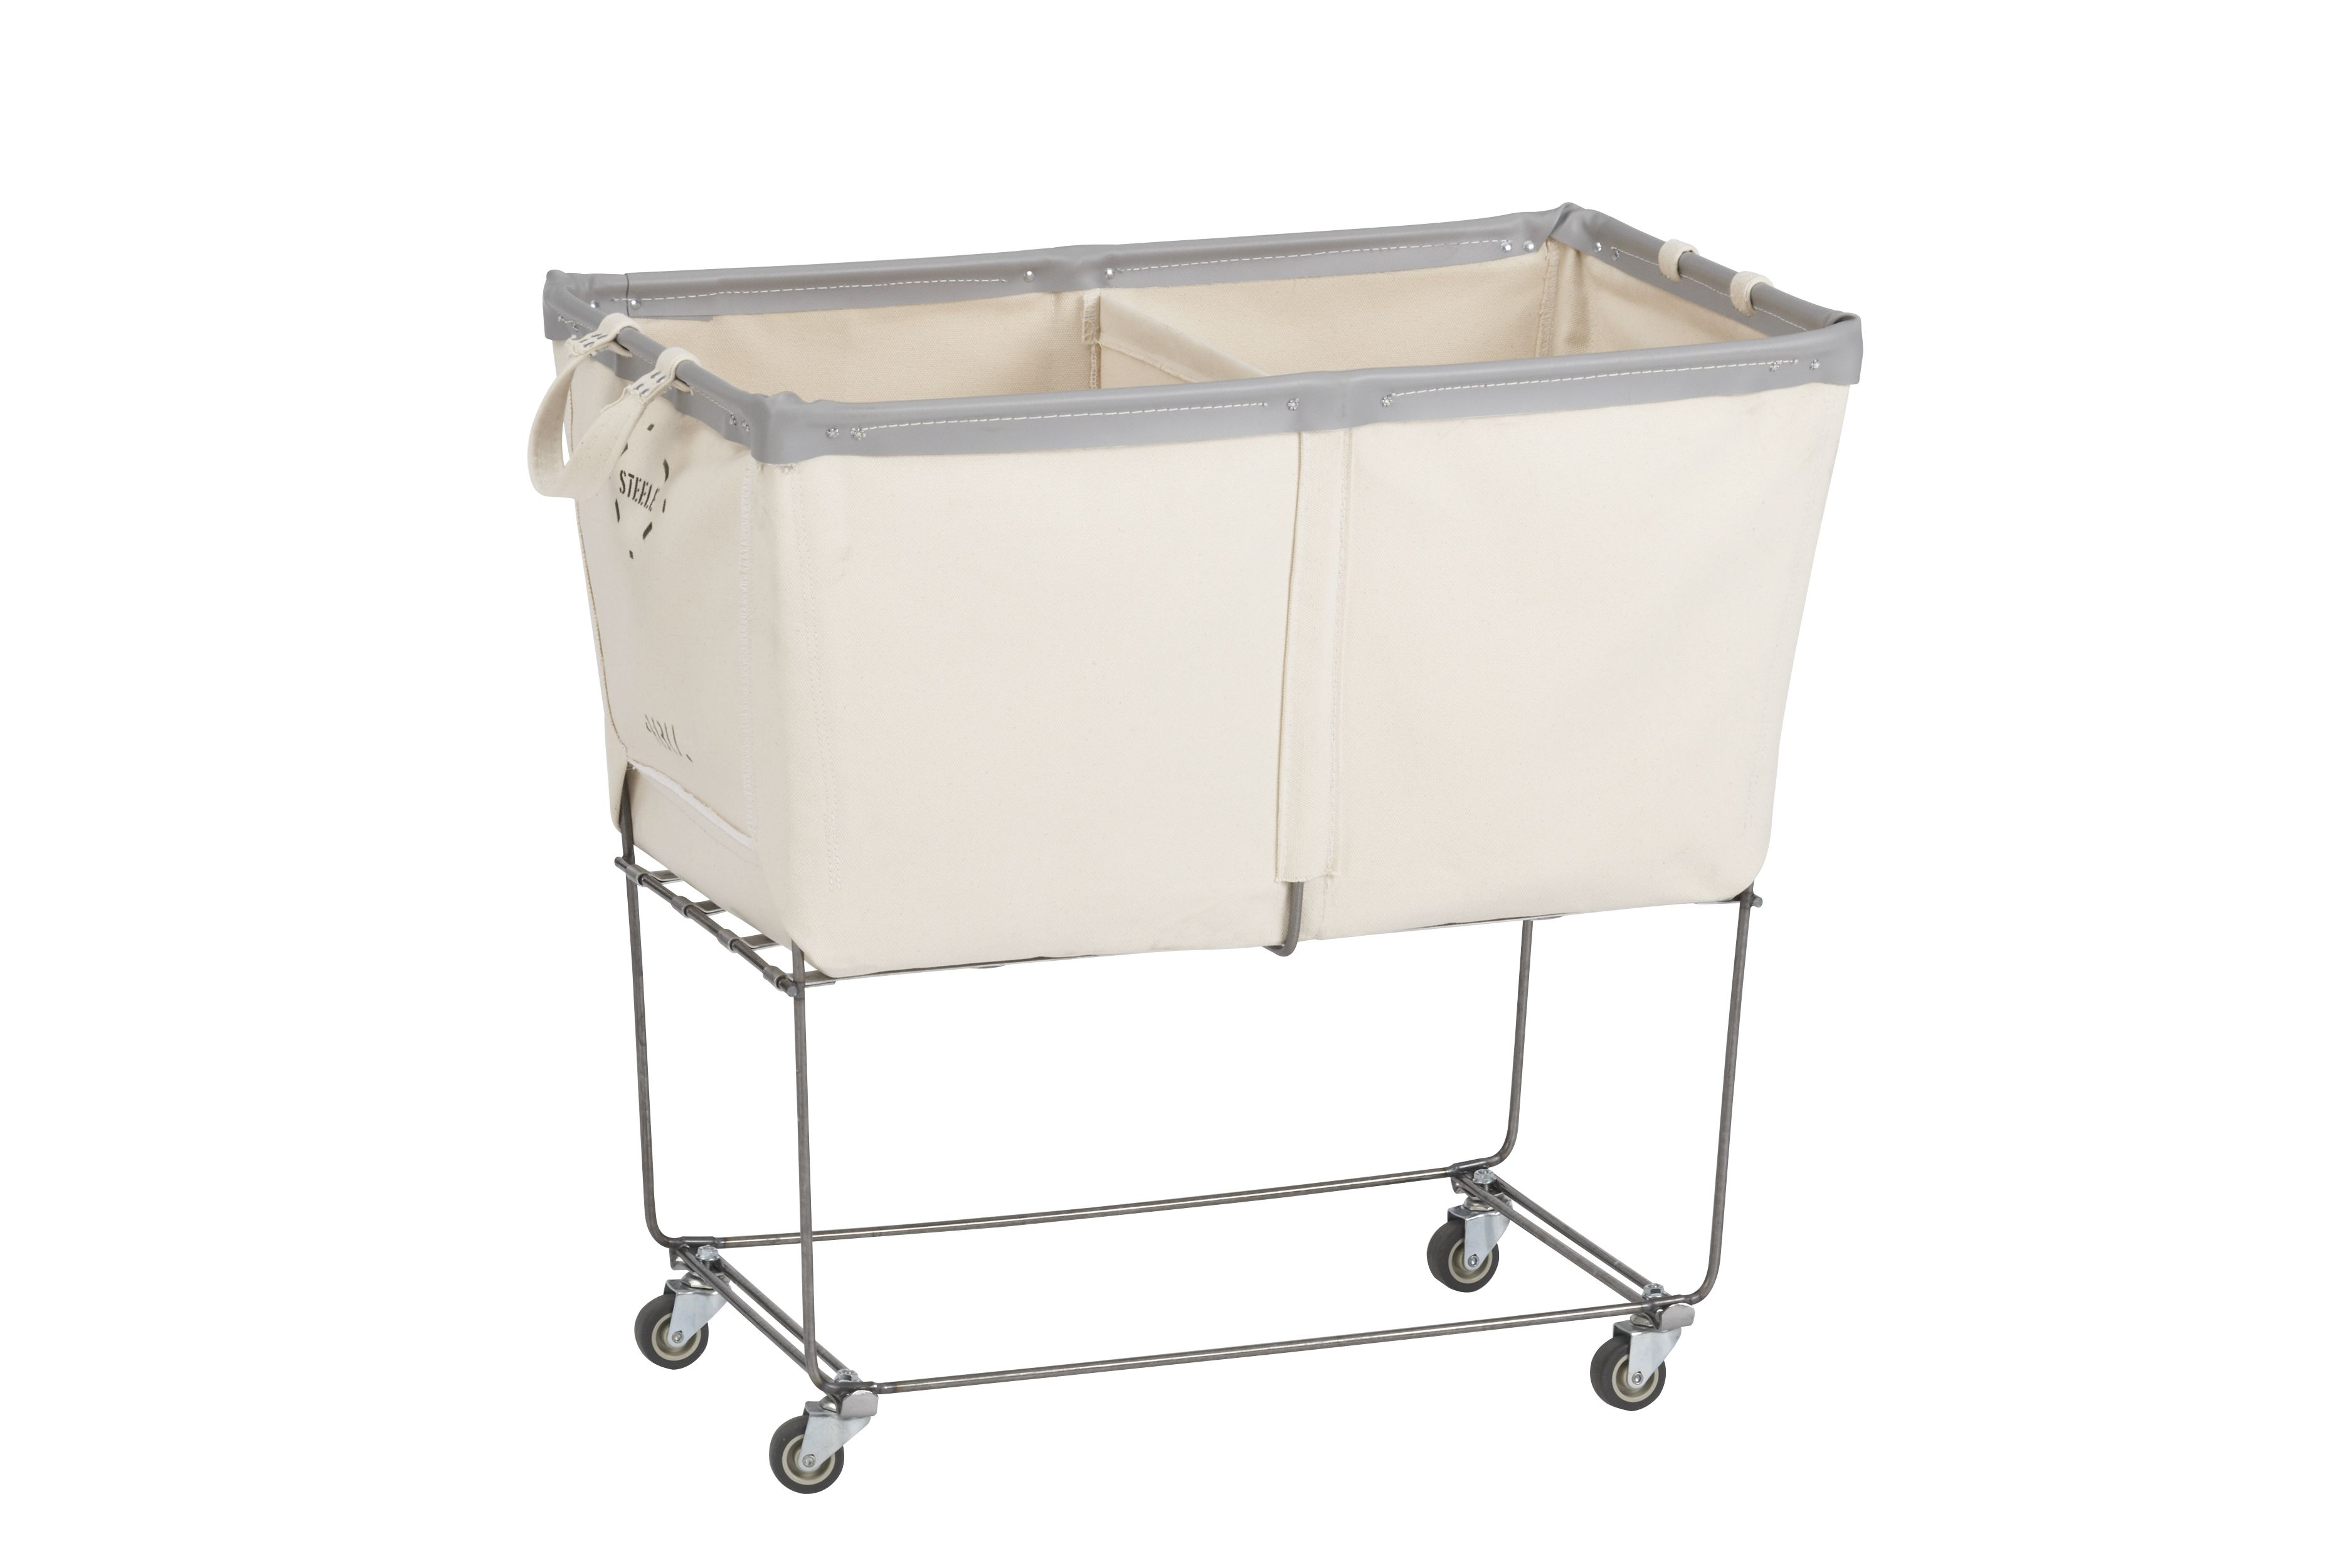 Fabric Laundry Hampers With Wheels Google Search Laundry